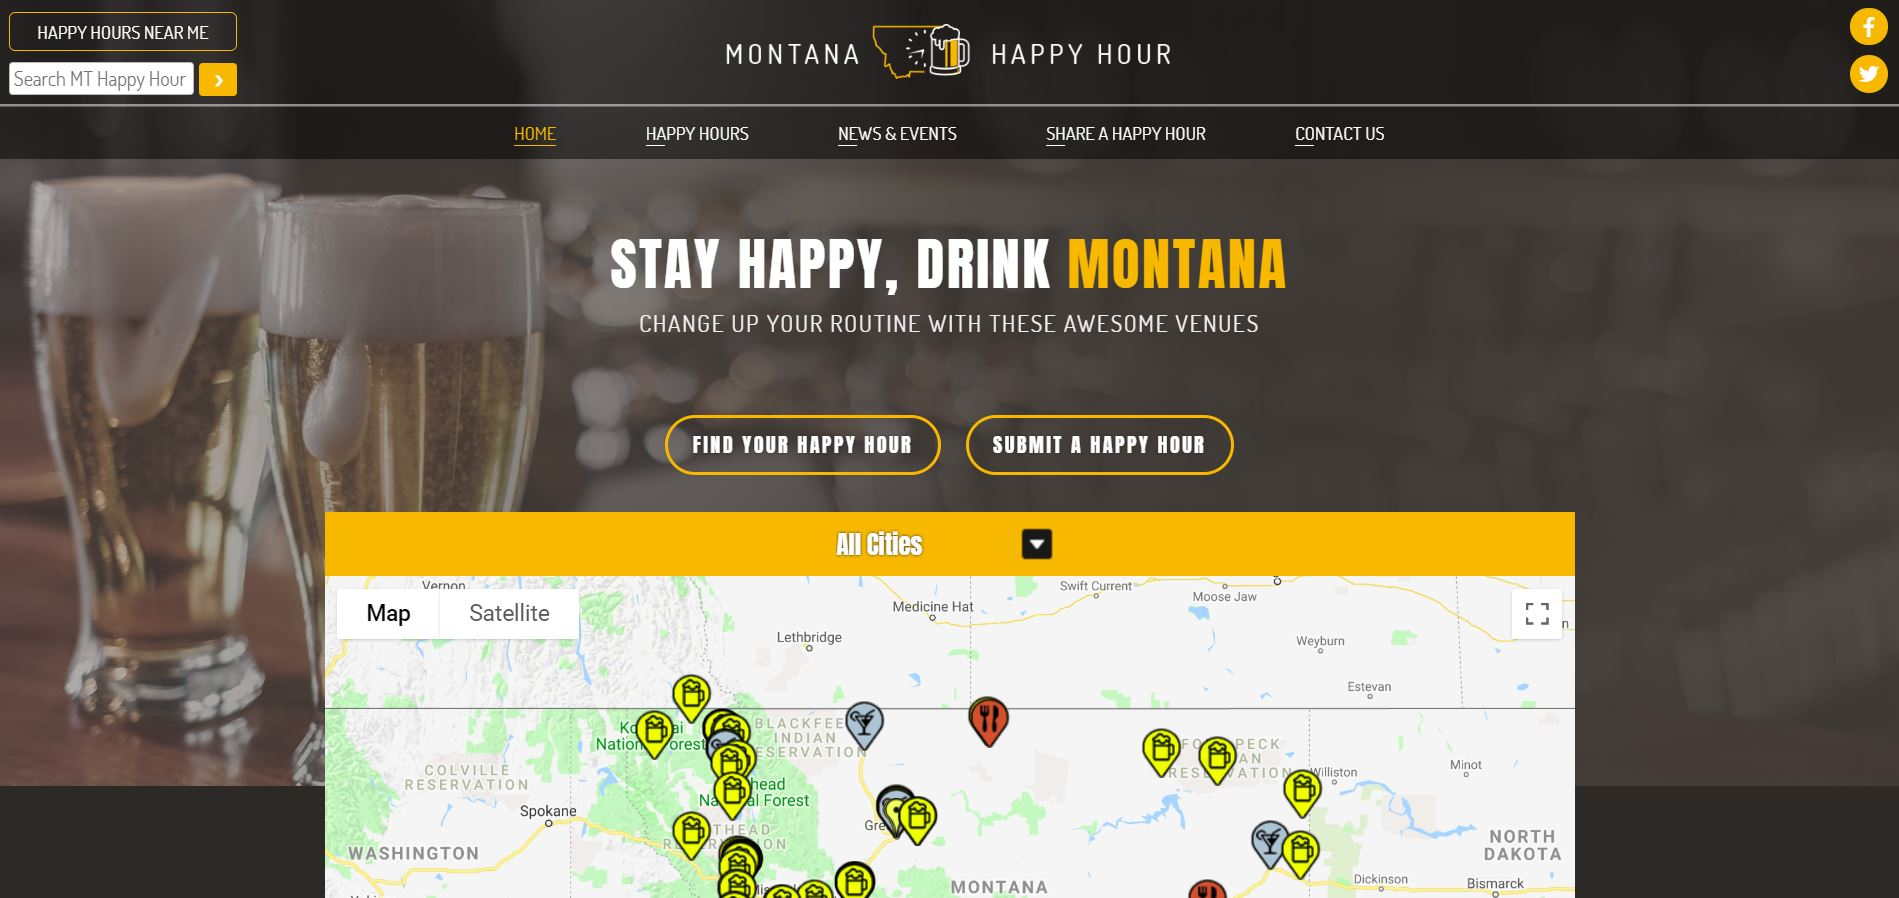 Montana Happy Hour